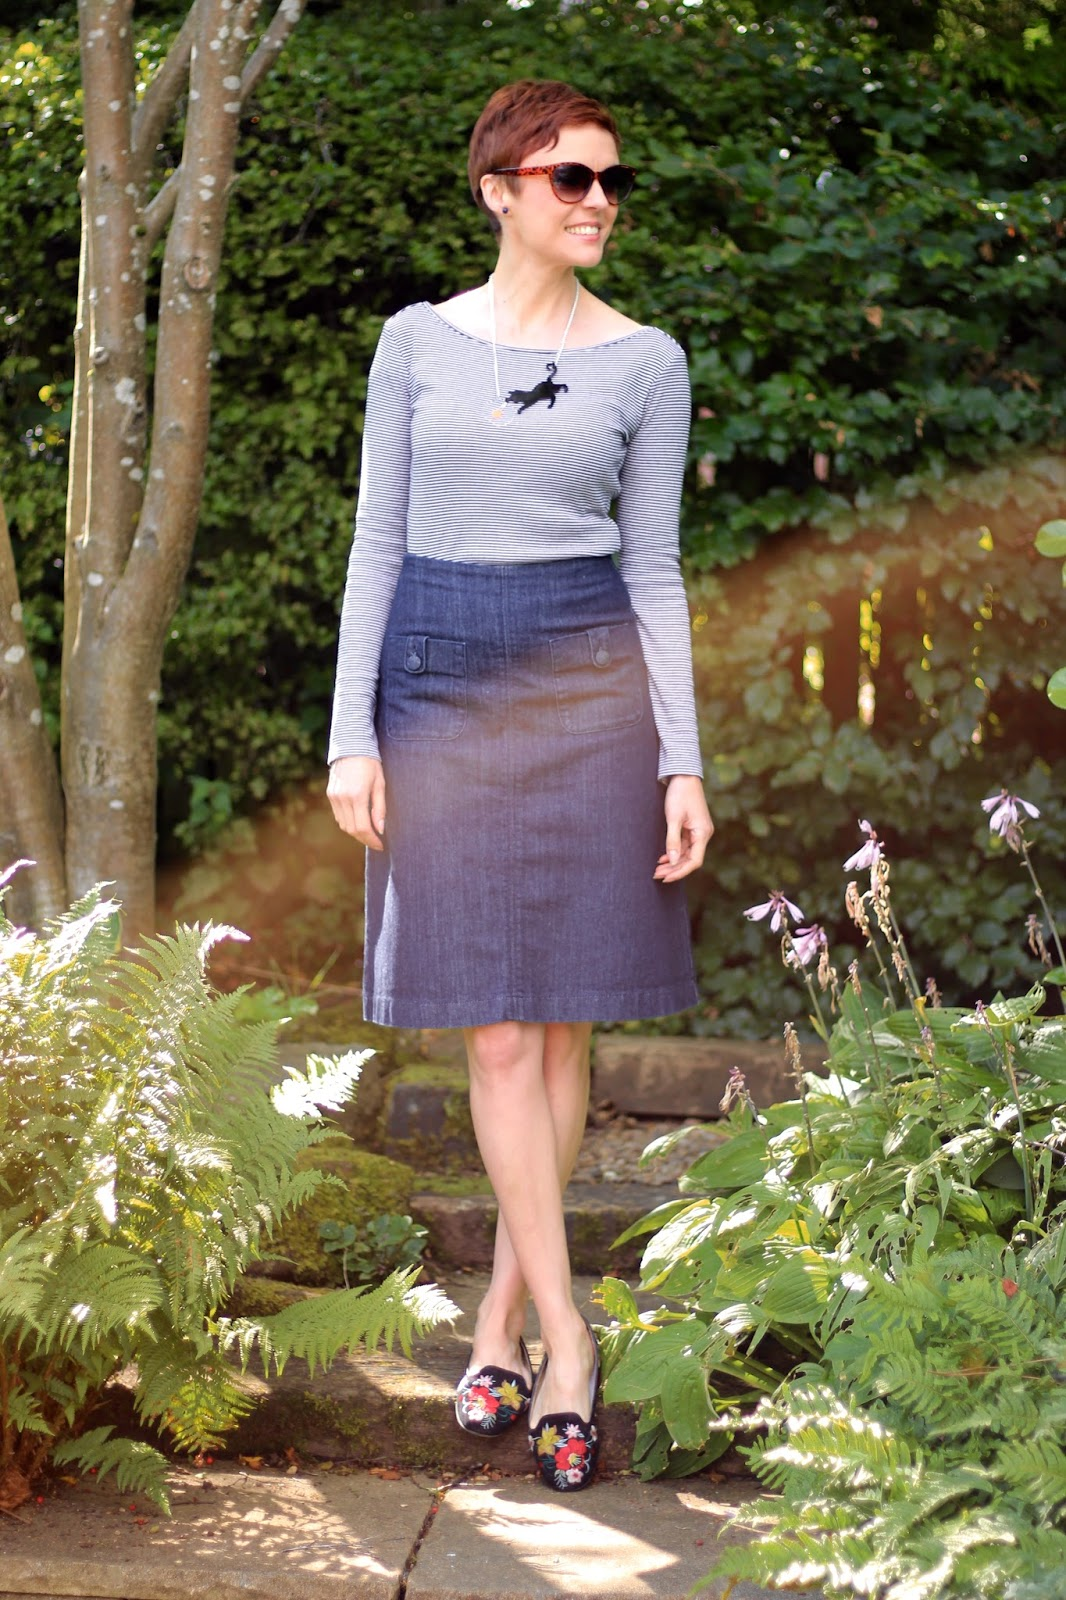 Denim A-line Skirt, embroidered shoes & Breton Stripes | Fake Fabulous